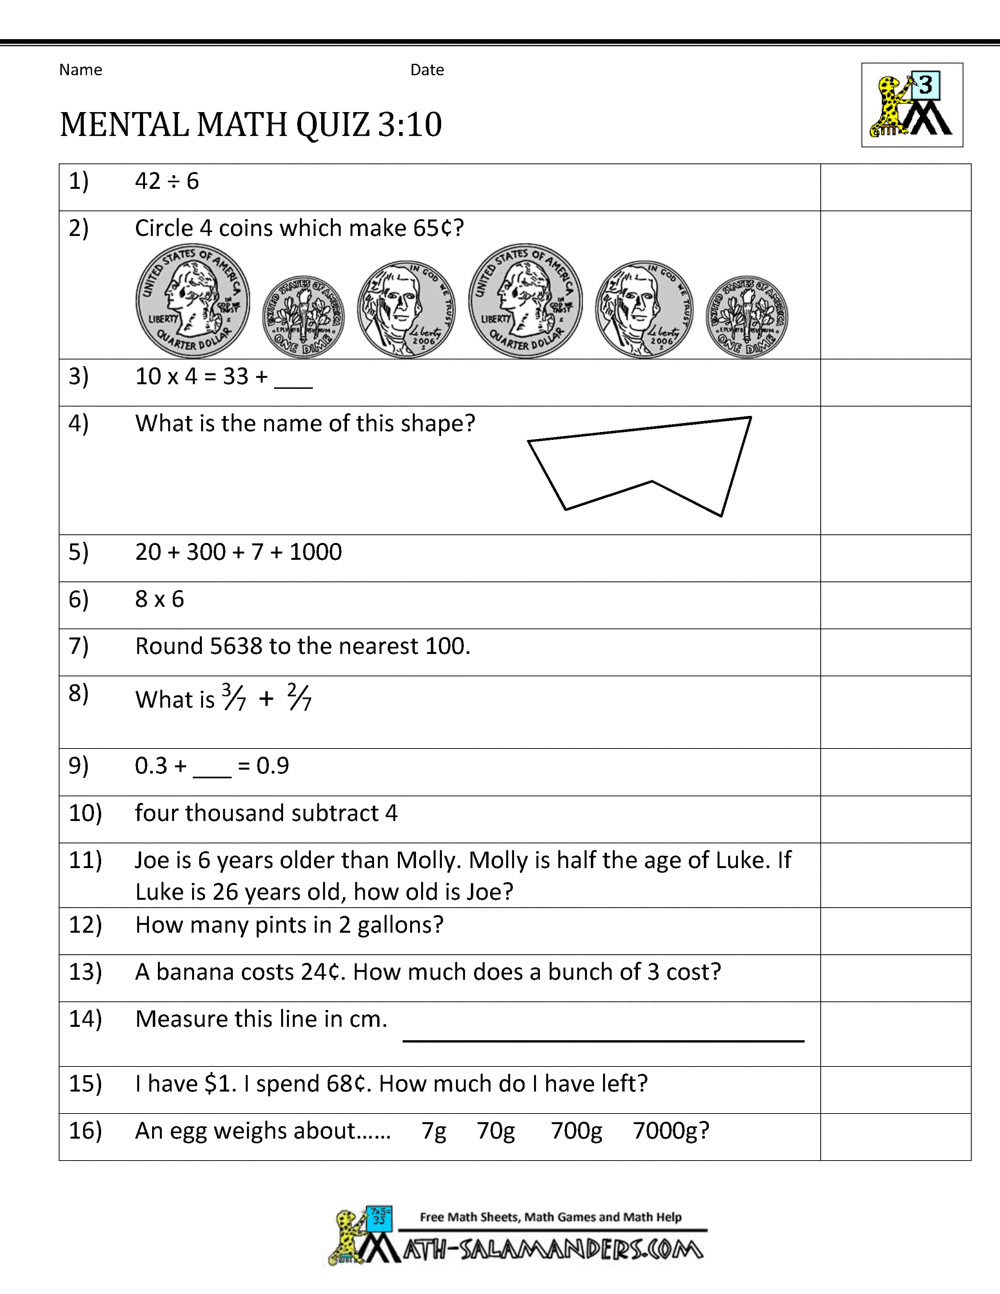 Mass Worksheets 3rd Grade 4 Free Math Worksheets Third Grade 3 Word Problems Mixed